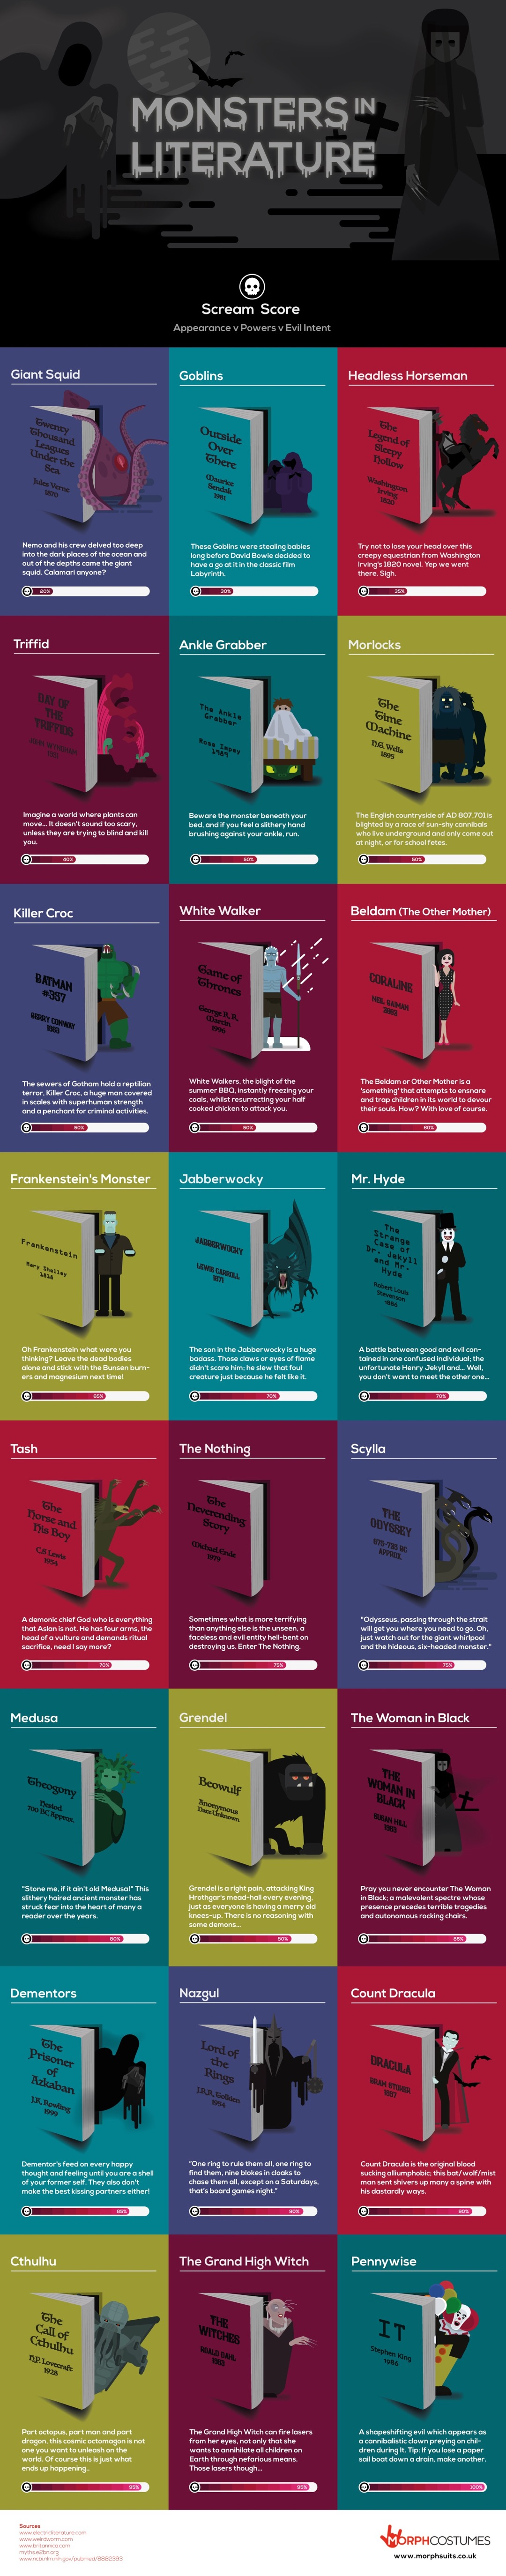 infographic of monsters in literature